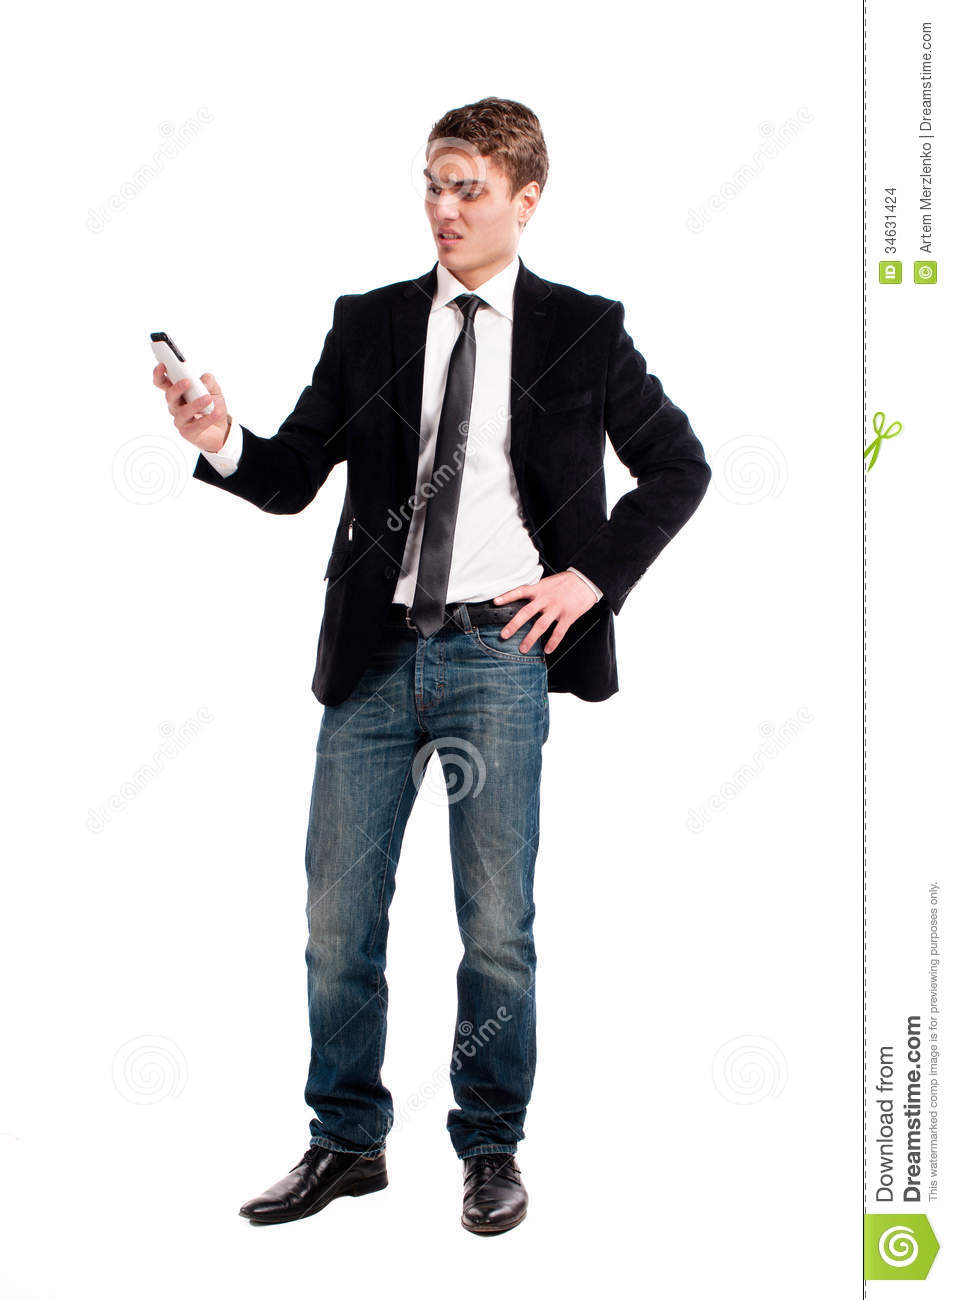 young-happy-man-holding-mobile-phone-por